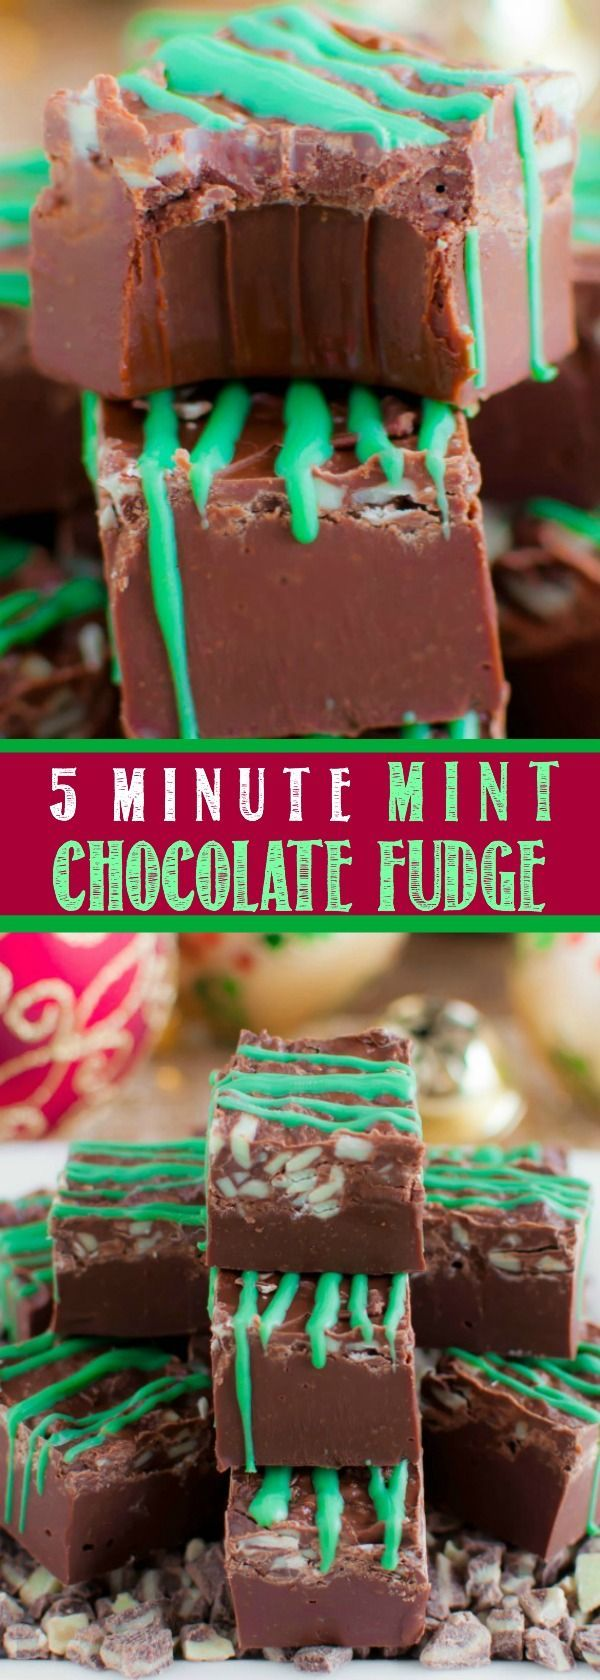 BEST EVER 5 Minute Mint Chocolate Fudge! So easy, and perfect for Christmas time! It's smooth and creamy, rich and chocolatey, cool and minty - so delicious!!